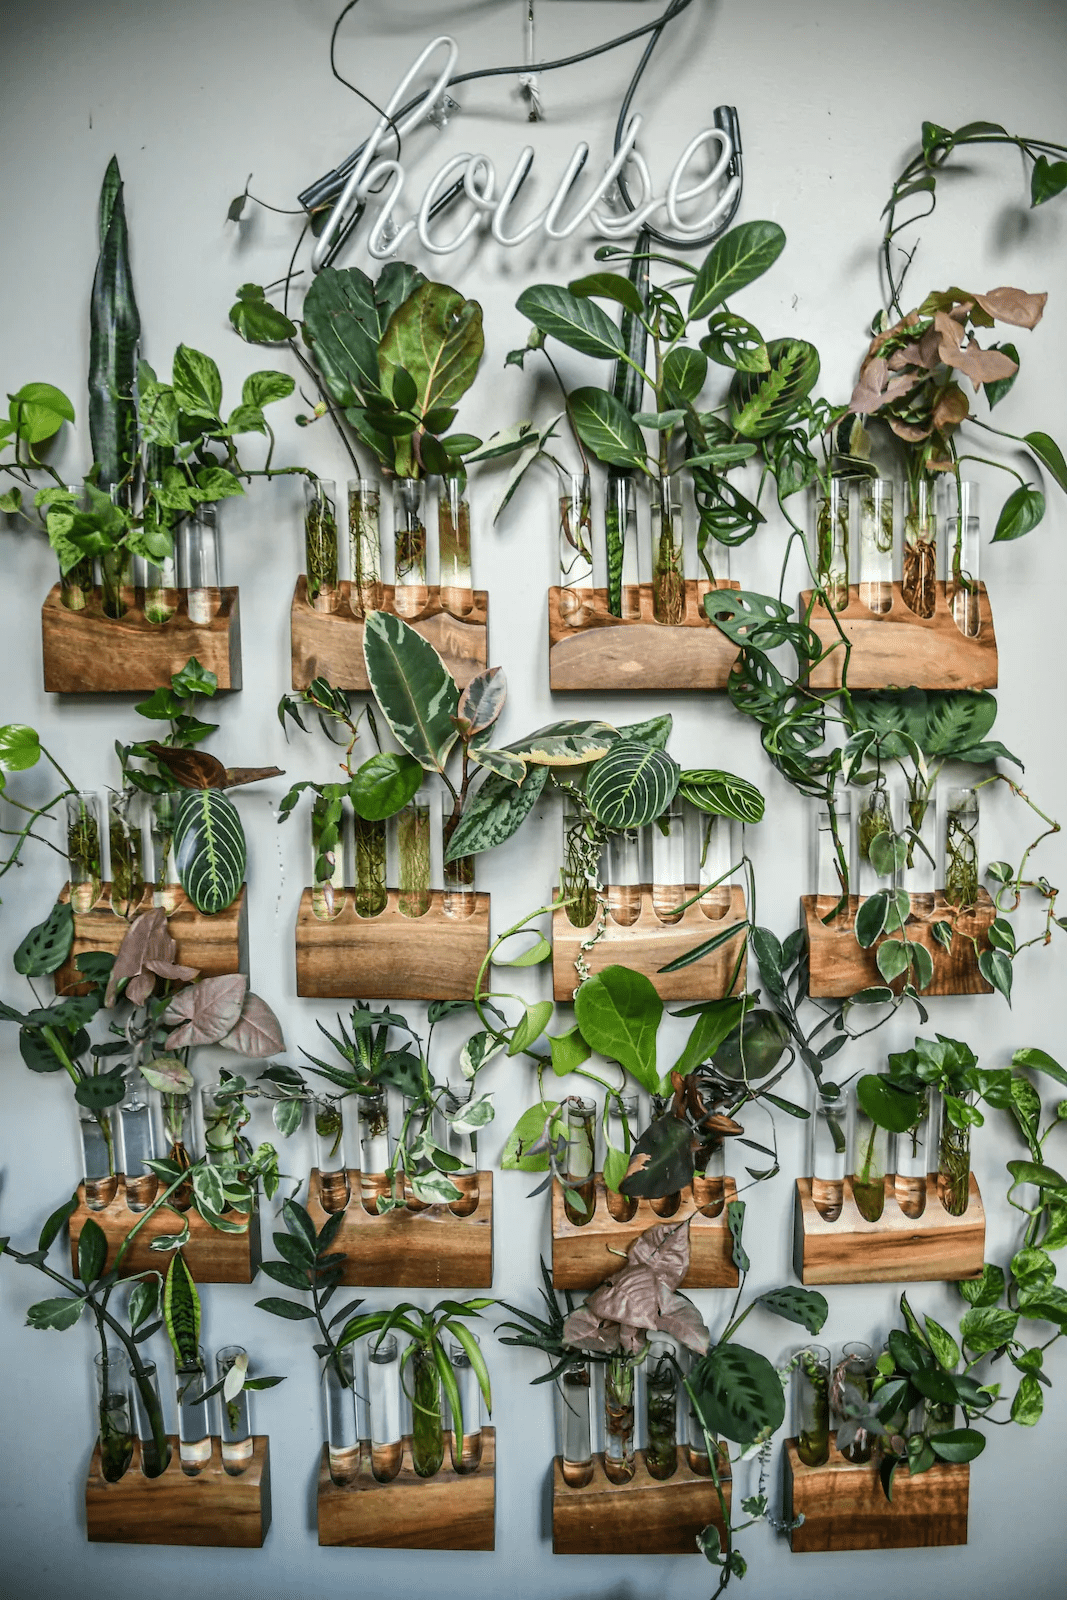 plants propagation workshop online